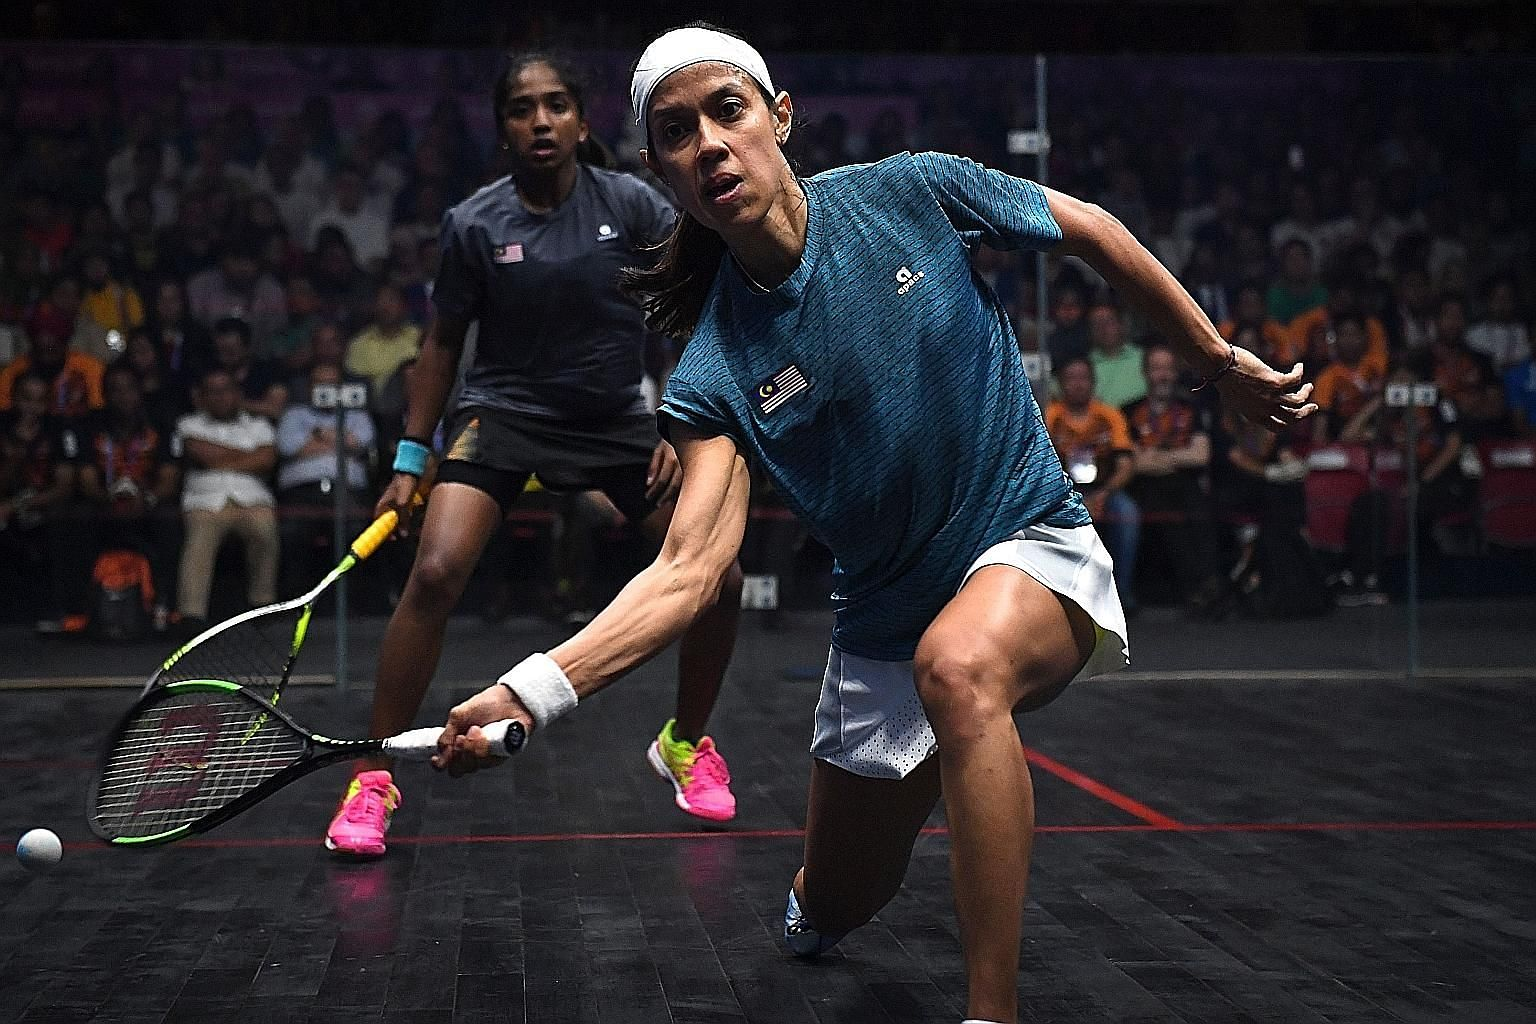 Nicol David returning a shot against fellow Malaysian Sivasangari Subramaniam in yesterday's final. She won 11-13, 11-9, 5-11, 11-6, 11-8 for her fifth Asiad gold.